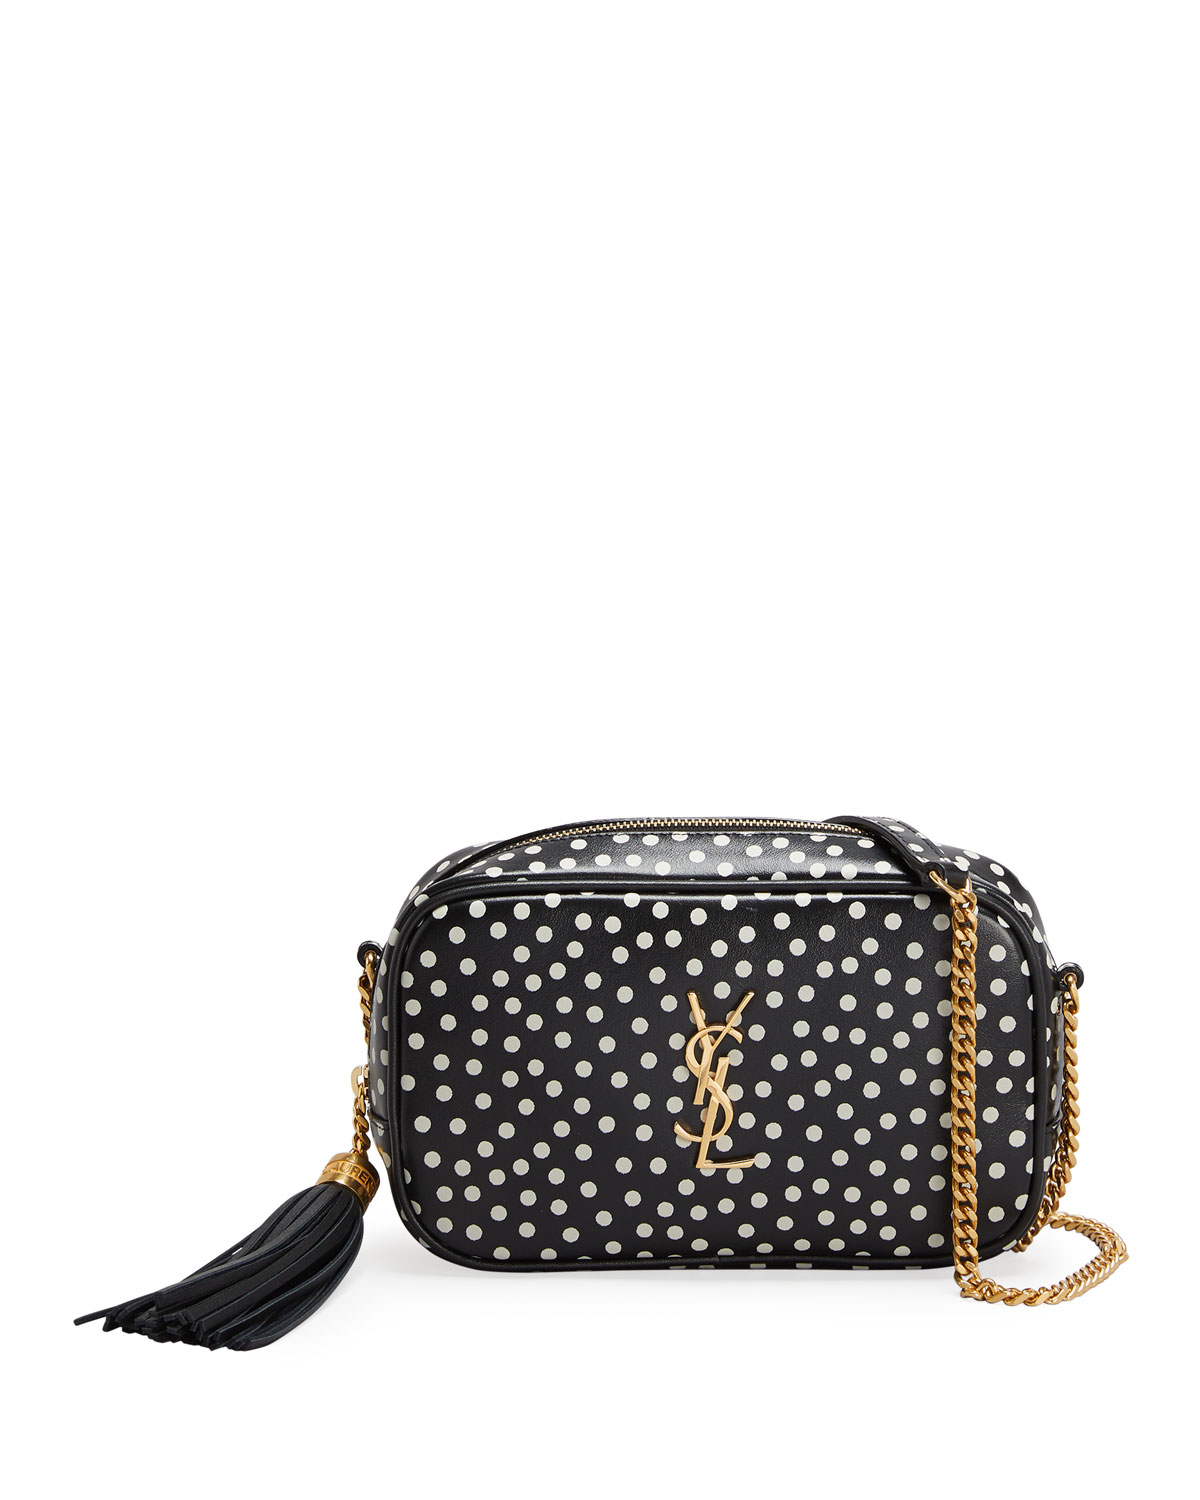 Saks Fifth Avenue: Up To 50% Off Saint Laurent & More